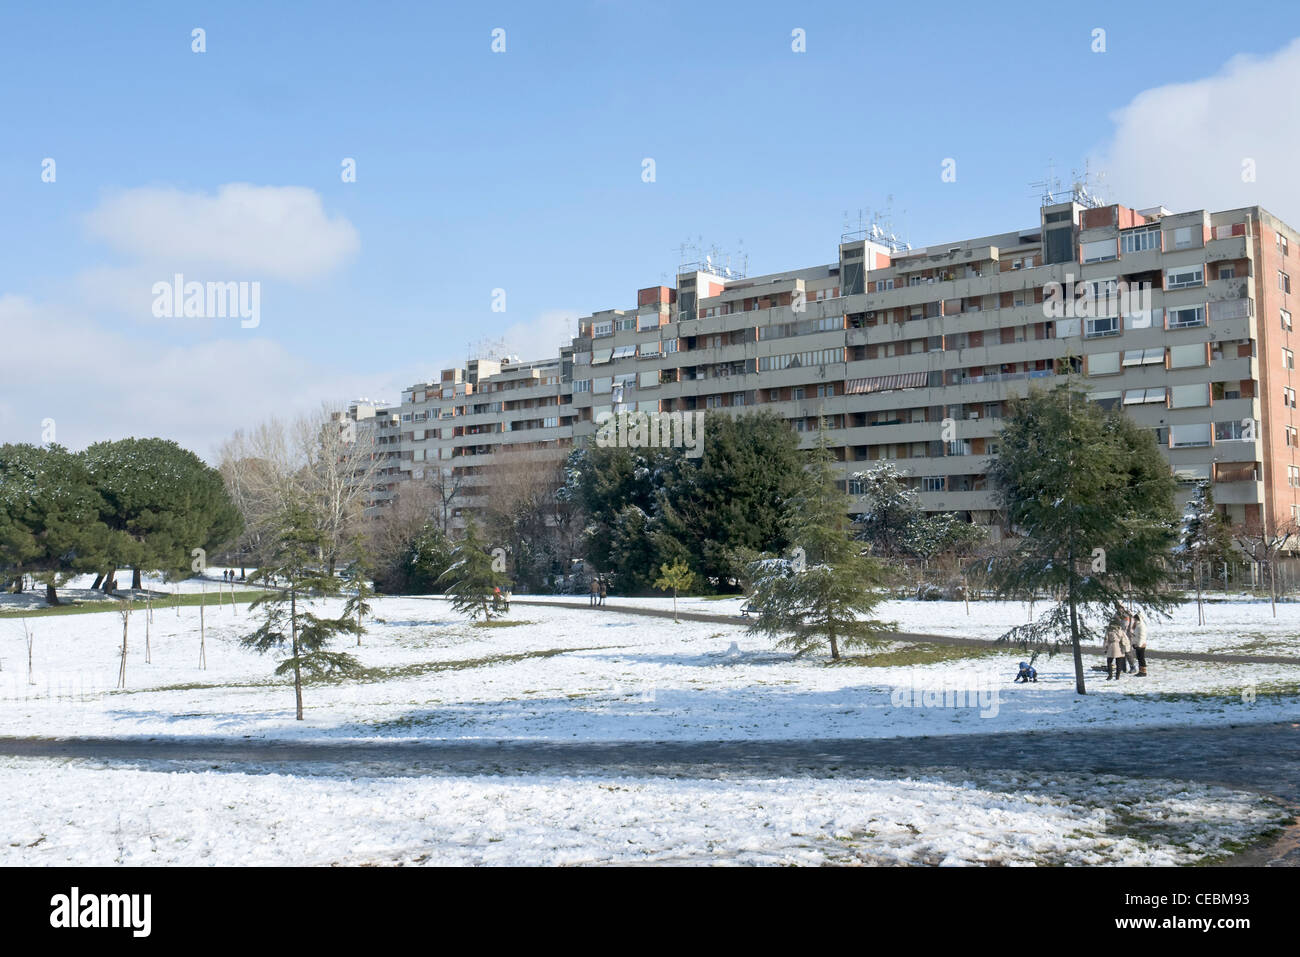 Quarto Lotto Apartment buildings in the Spinaceto district after a rare snowfall occurred on February 4th, 2012, - Stock Image